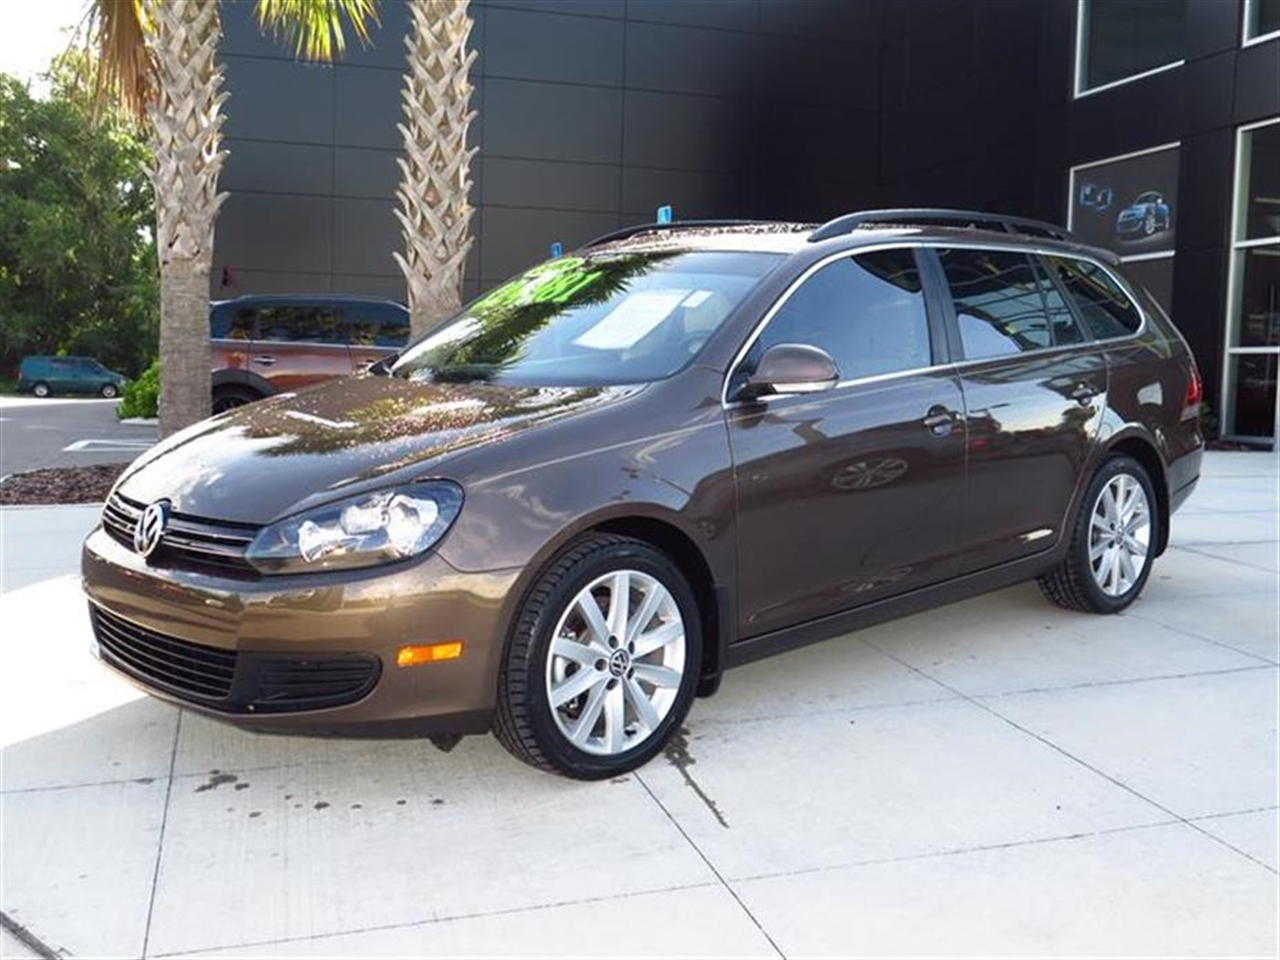 2013 VOLKSWAGEN JETTA SPORTWAGEN 4dr DSG TDI wSunroof 28190 miles 3 pwr outlets Anti-theft veh